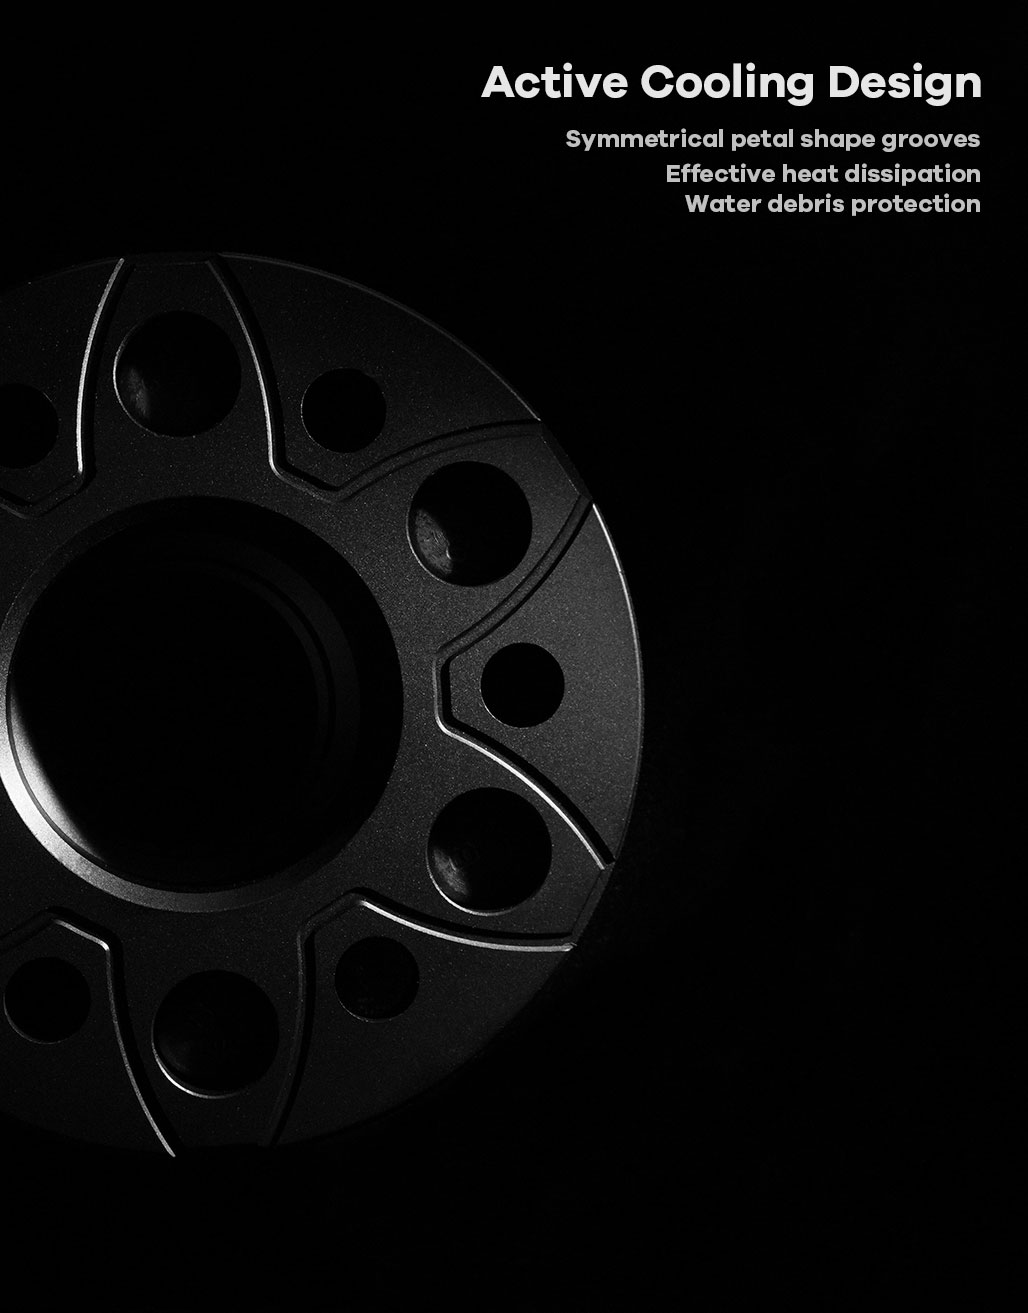 BONOSS-forged-active-cooling-wheel-spacer-for-nissan-Armada-TitanXD-6x139.7-78.1-14x1.5-6061t6-by-grace-3